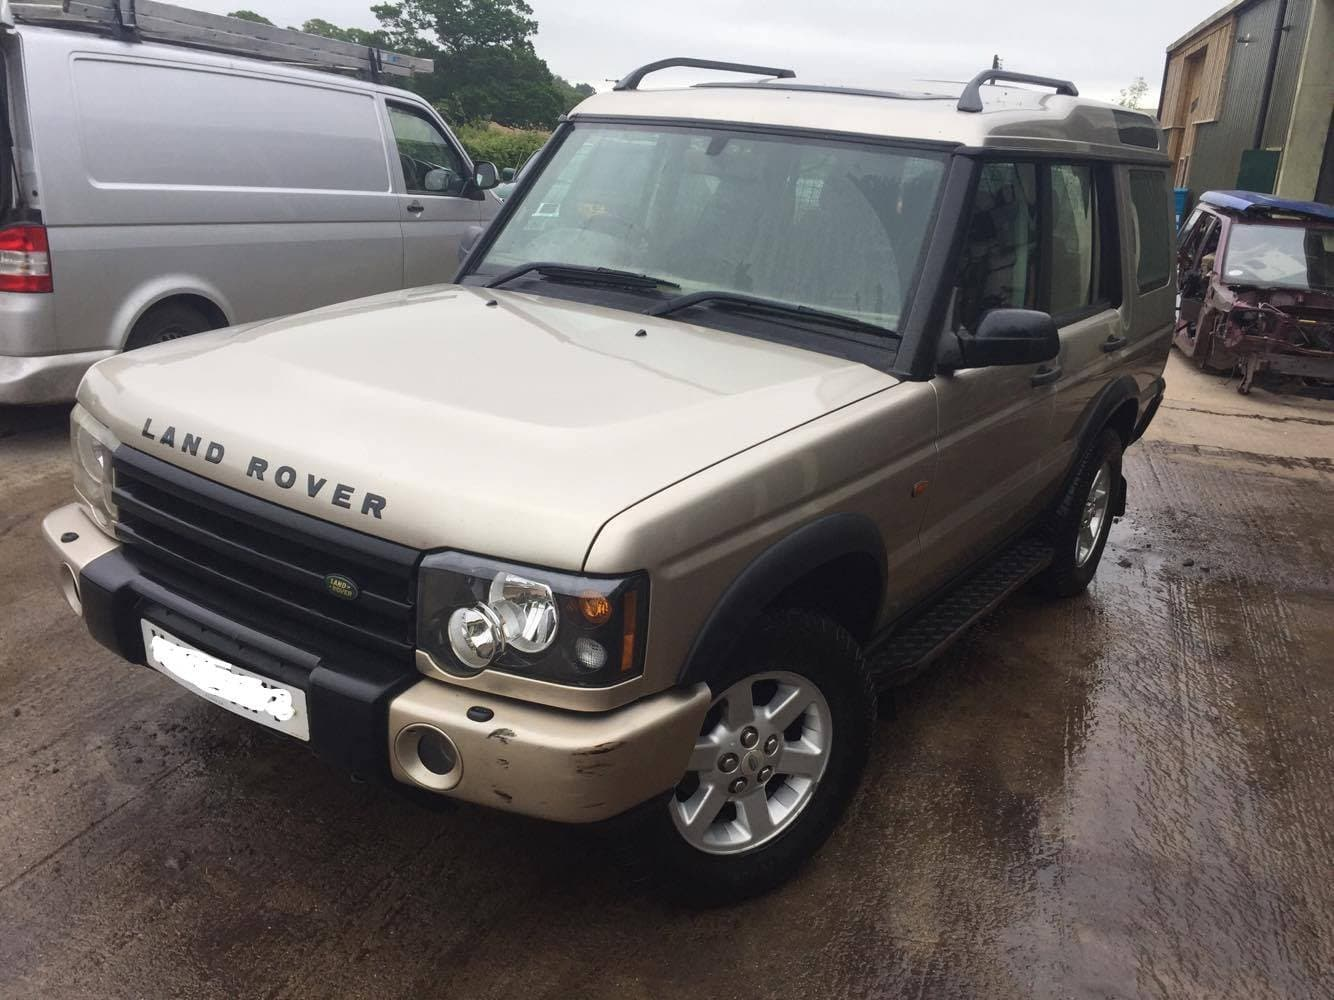 currently breaking 2003 land rover discovery 2 facelift 2 5l rh gentlemenofsalvage co uk land rover discovery 2 manual 1999 land rover discovery 2 owners manual pdf